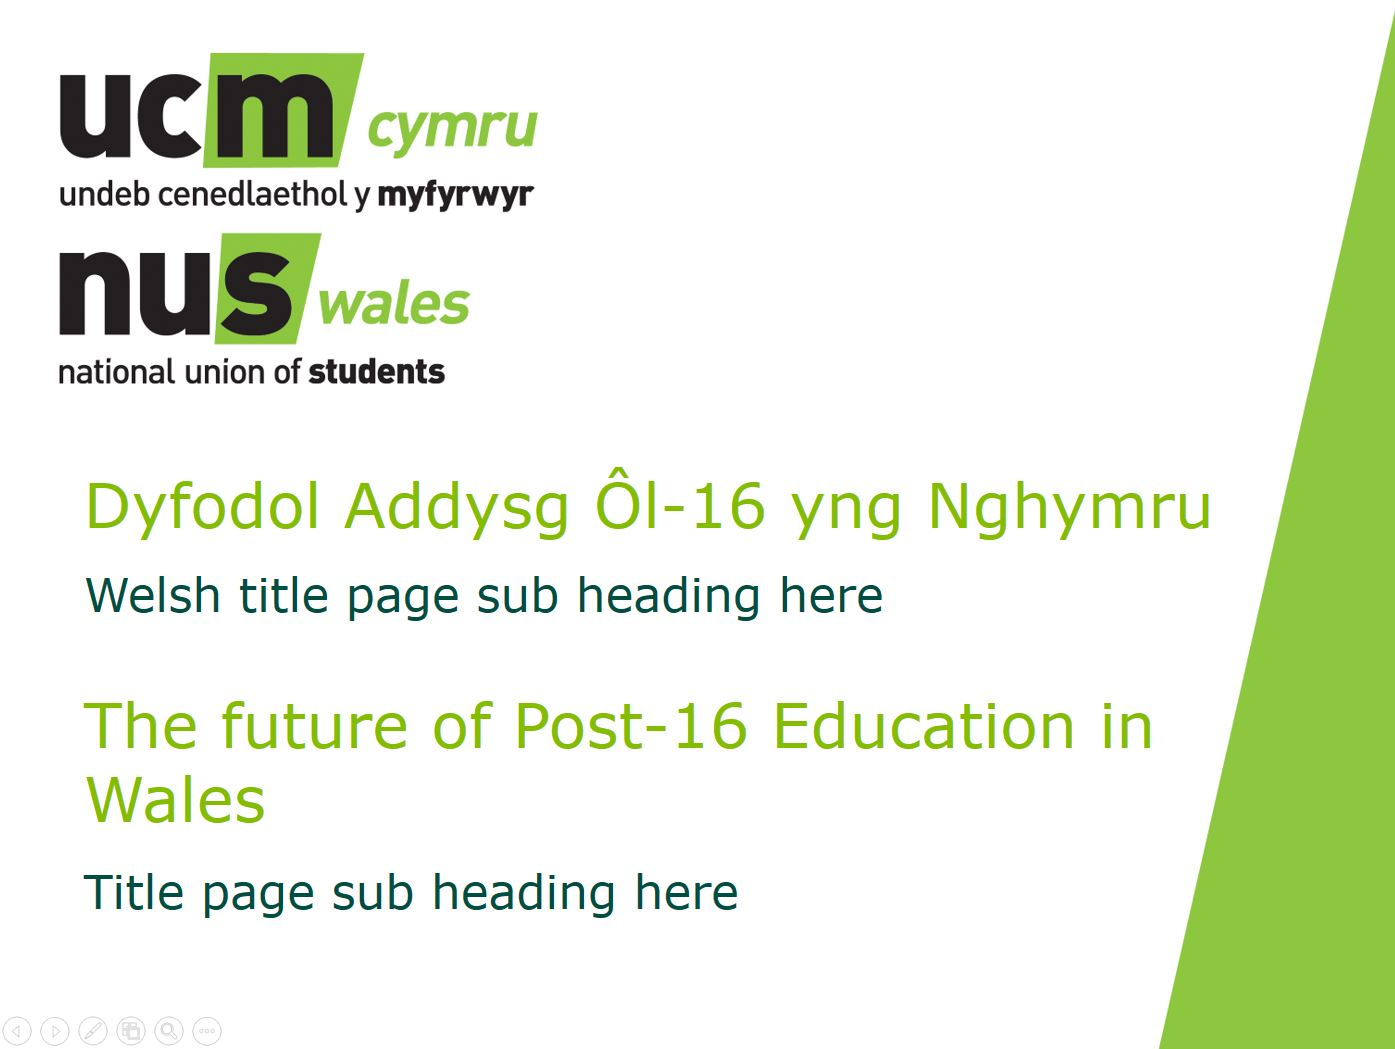 The future of post-16 education in Wales